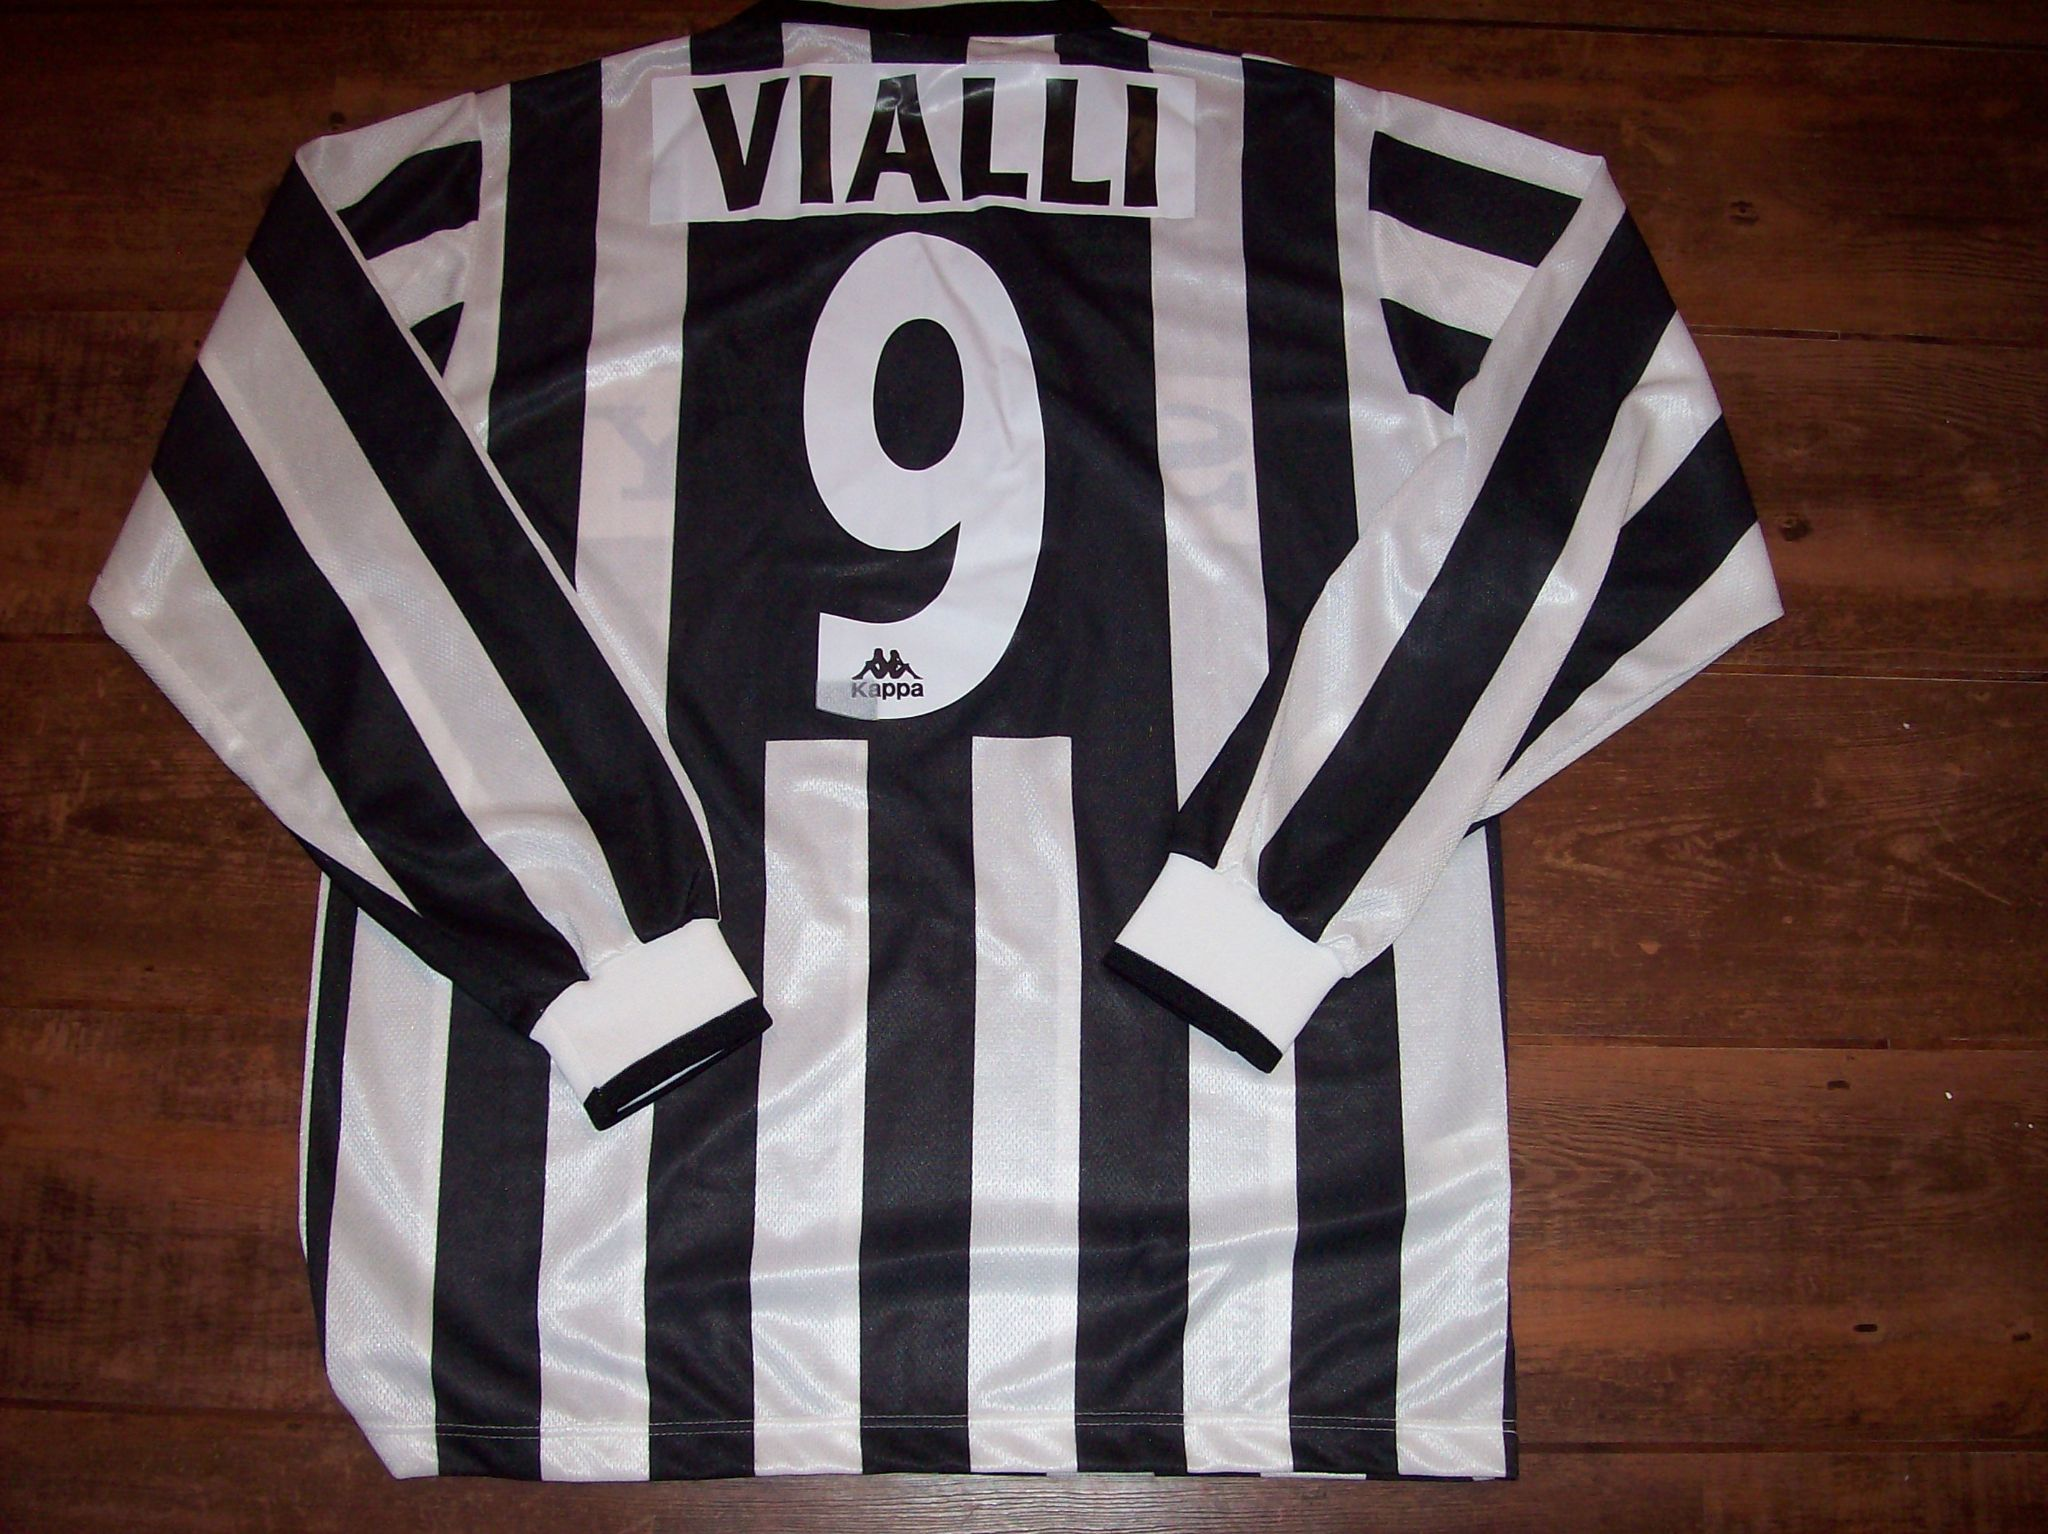 d46909139 1995 1996 Juventus Vialli BNWT New Home L s Football Shirt Adults Large